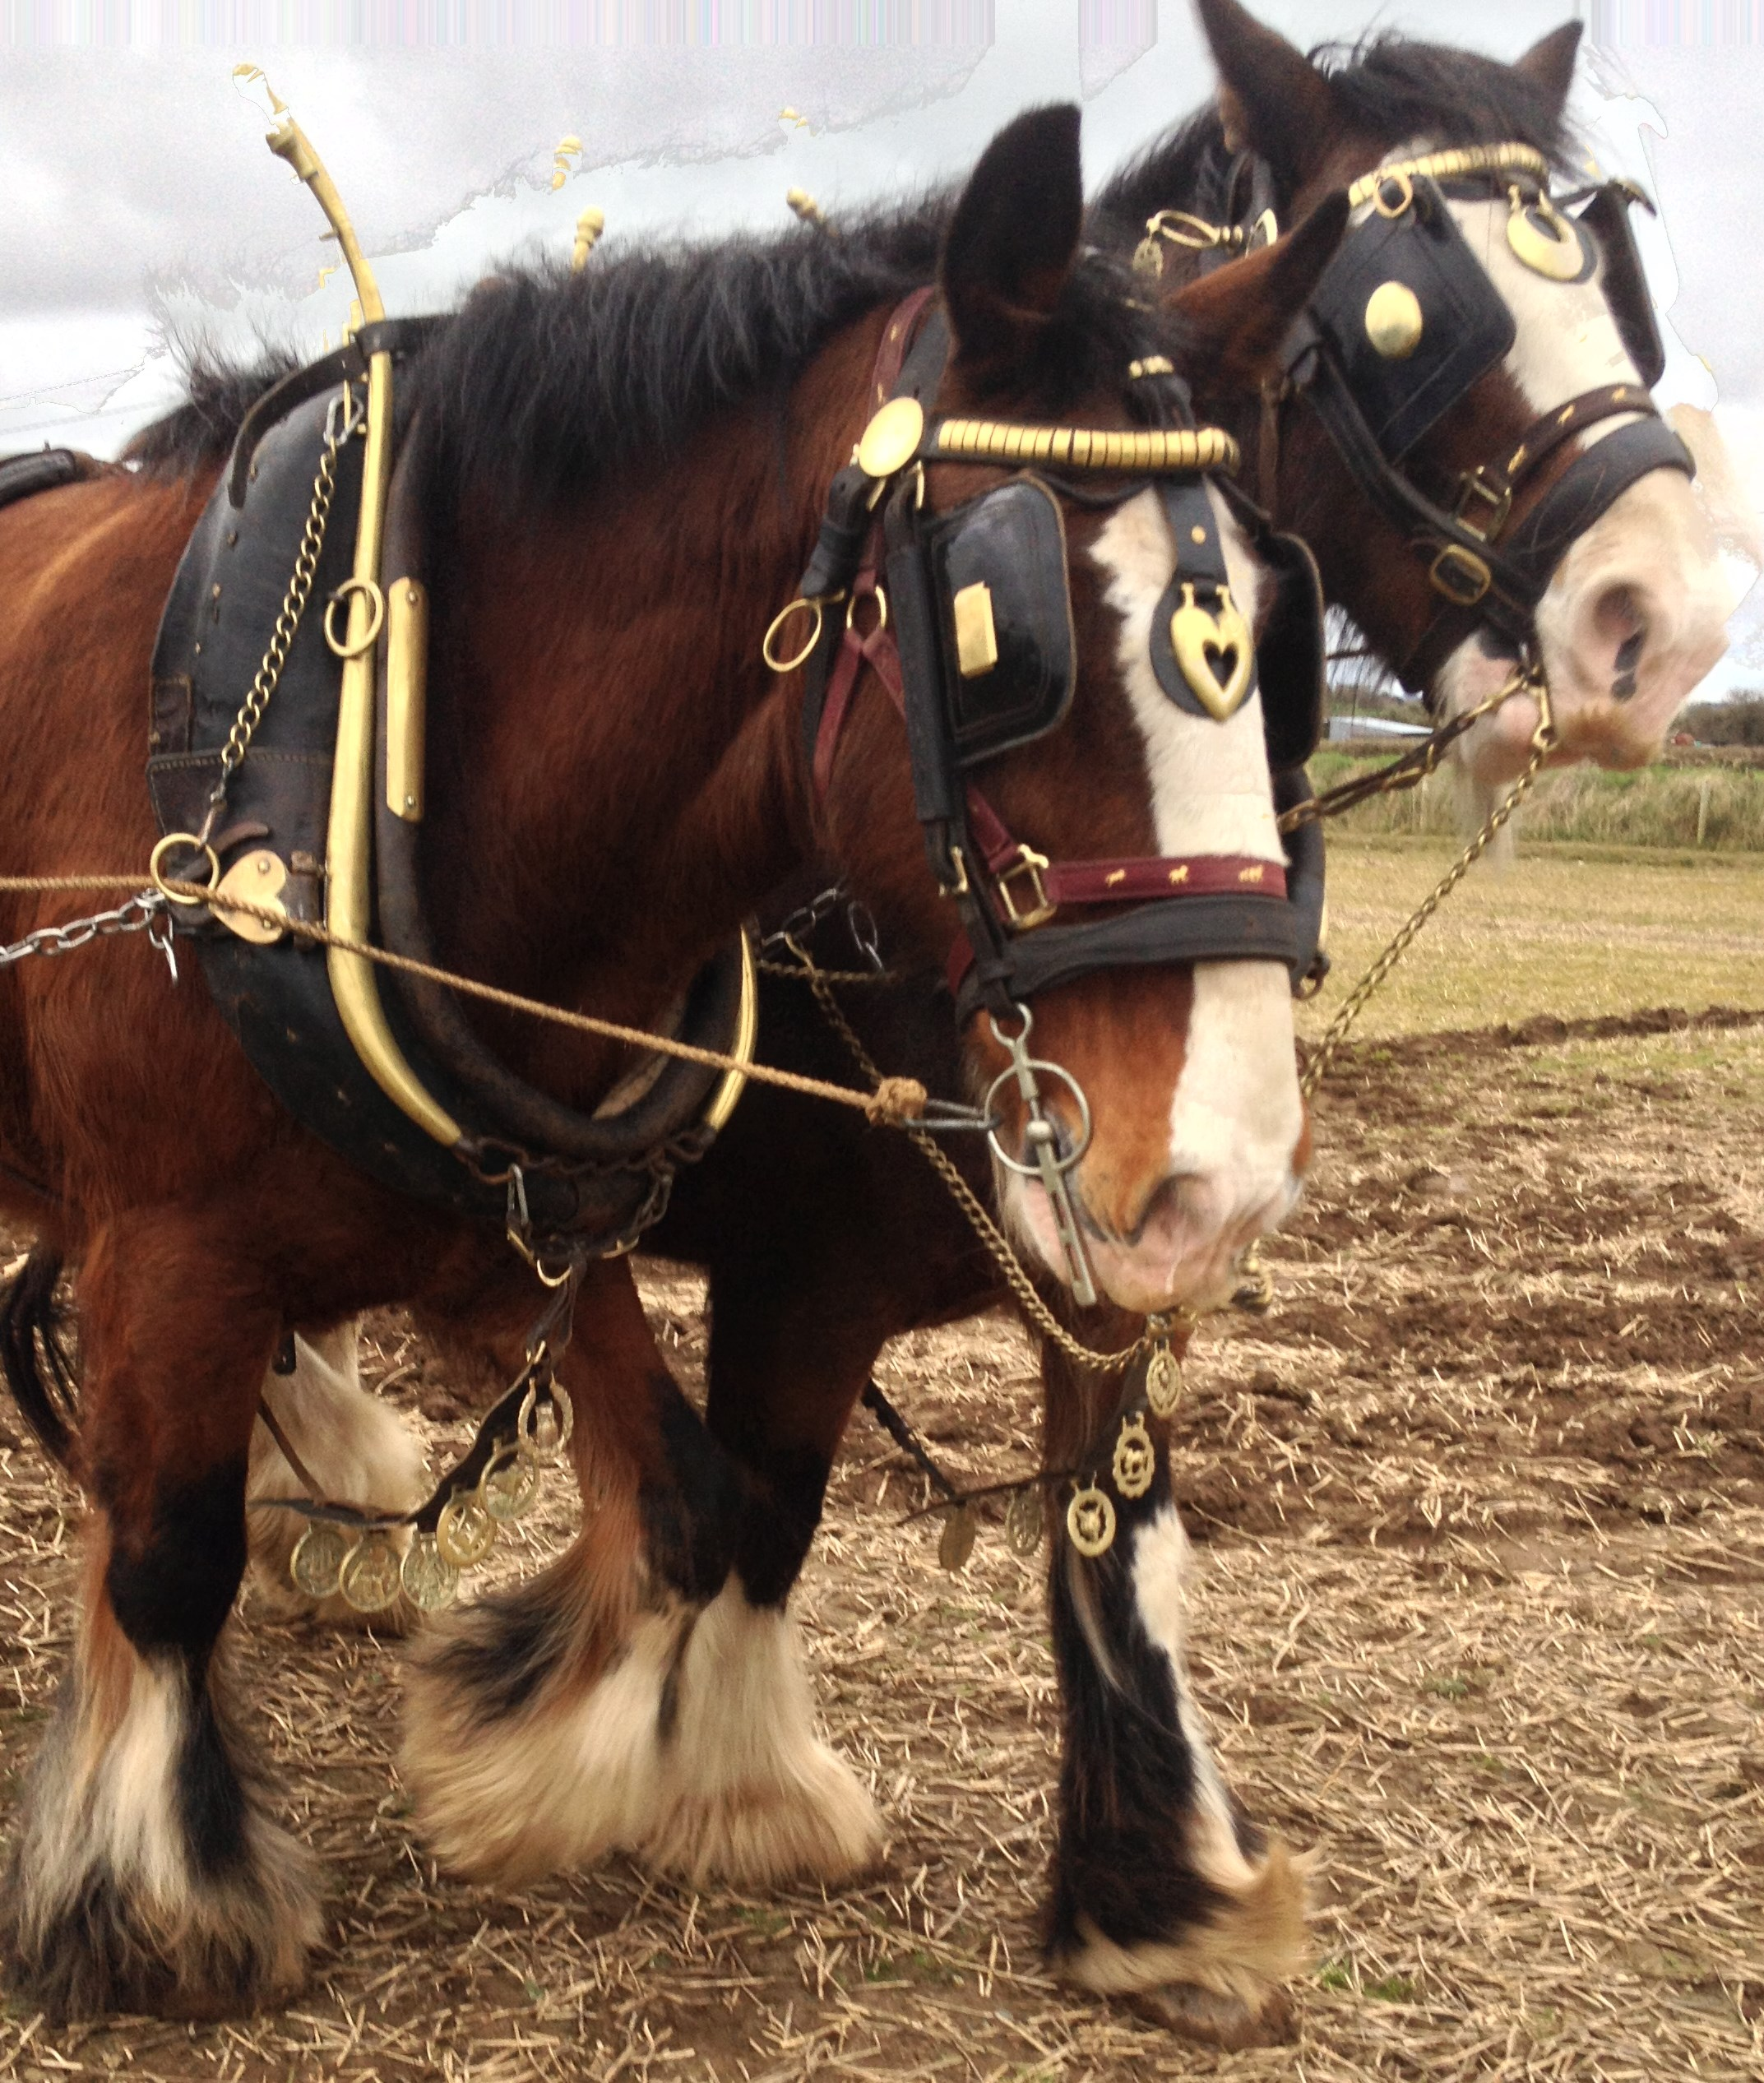 two-clydesdale-horses-in-full-ploughing-harness